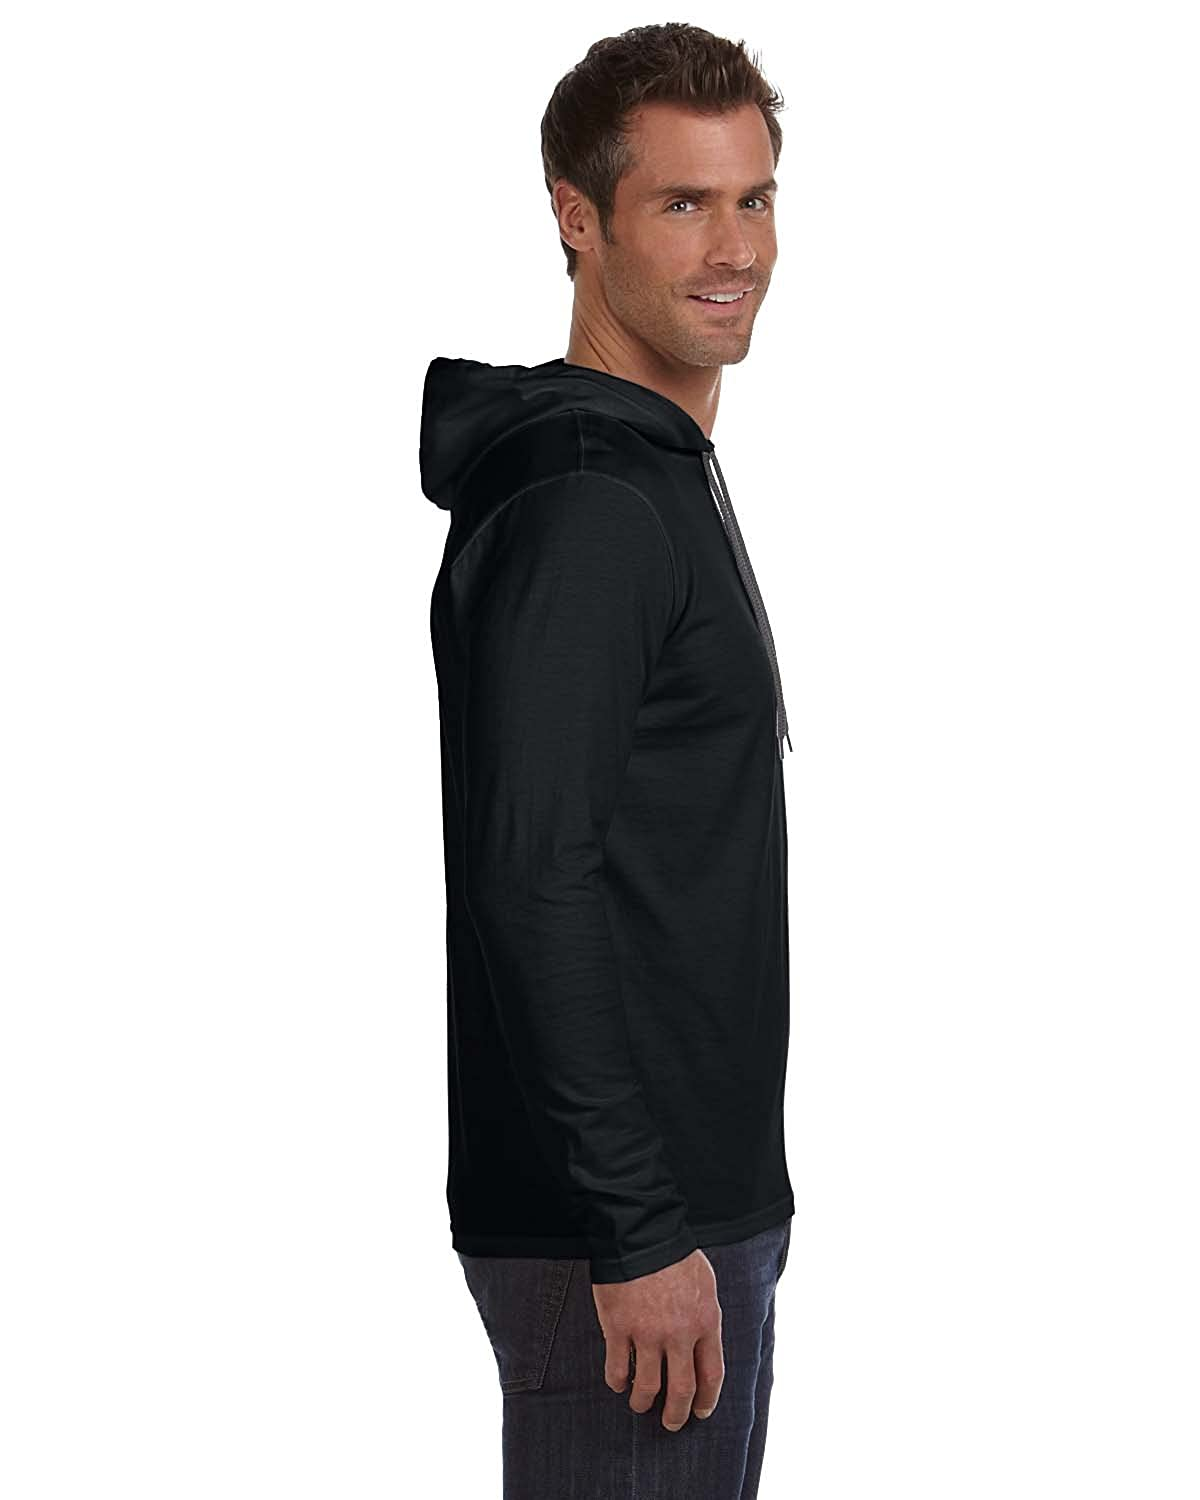 Black t shirt hoodie - Amazon Com Anvil A987adult Lightweight Long Sleeve Hooded Tee Sports Outdoors